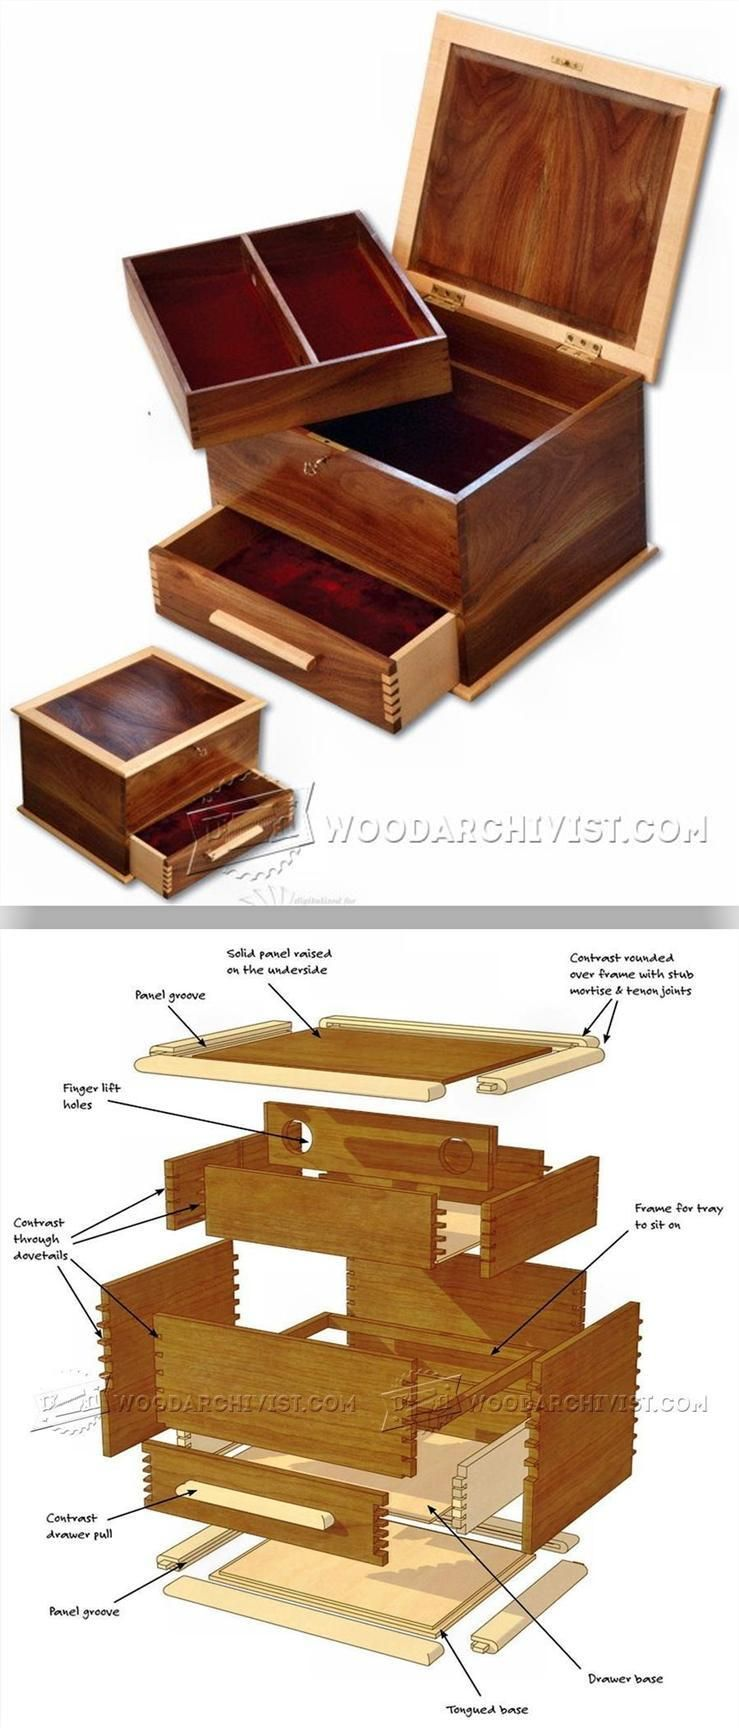 Jewellery Box Plans Woodworking Plans And Projects Woodarchivist